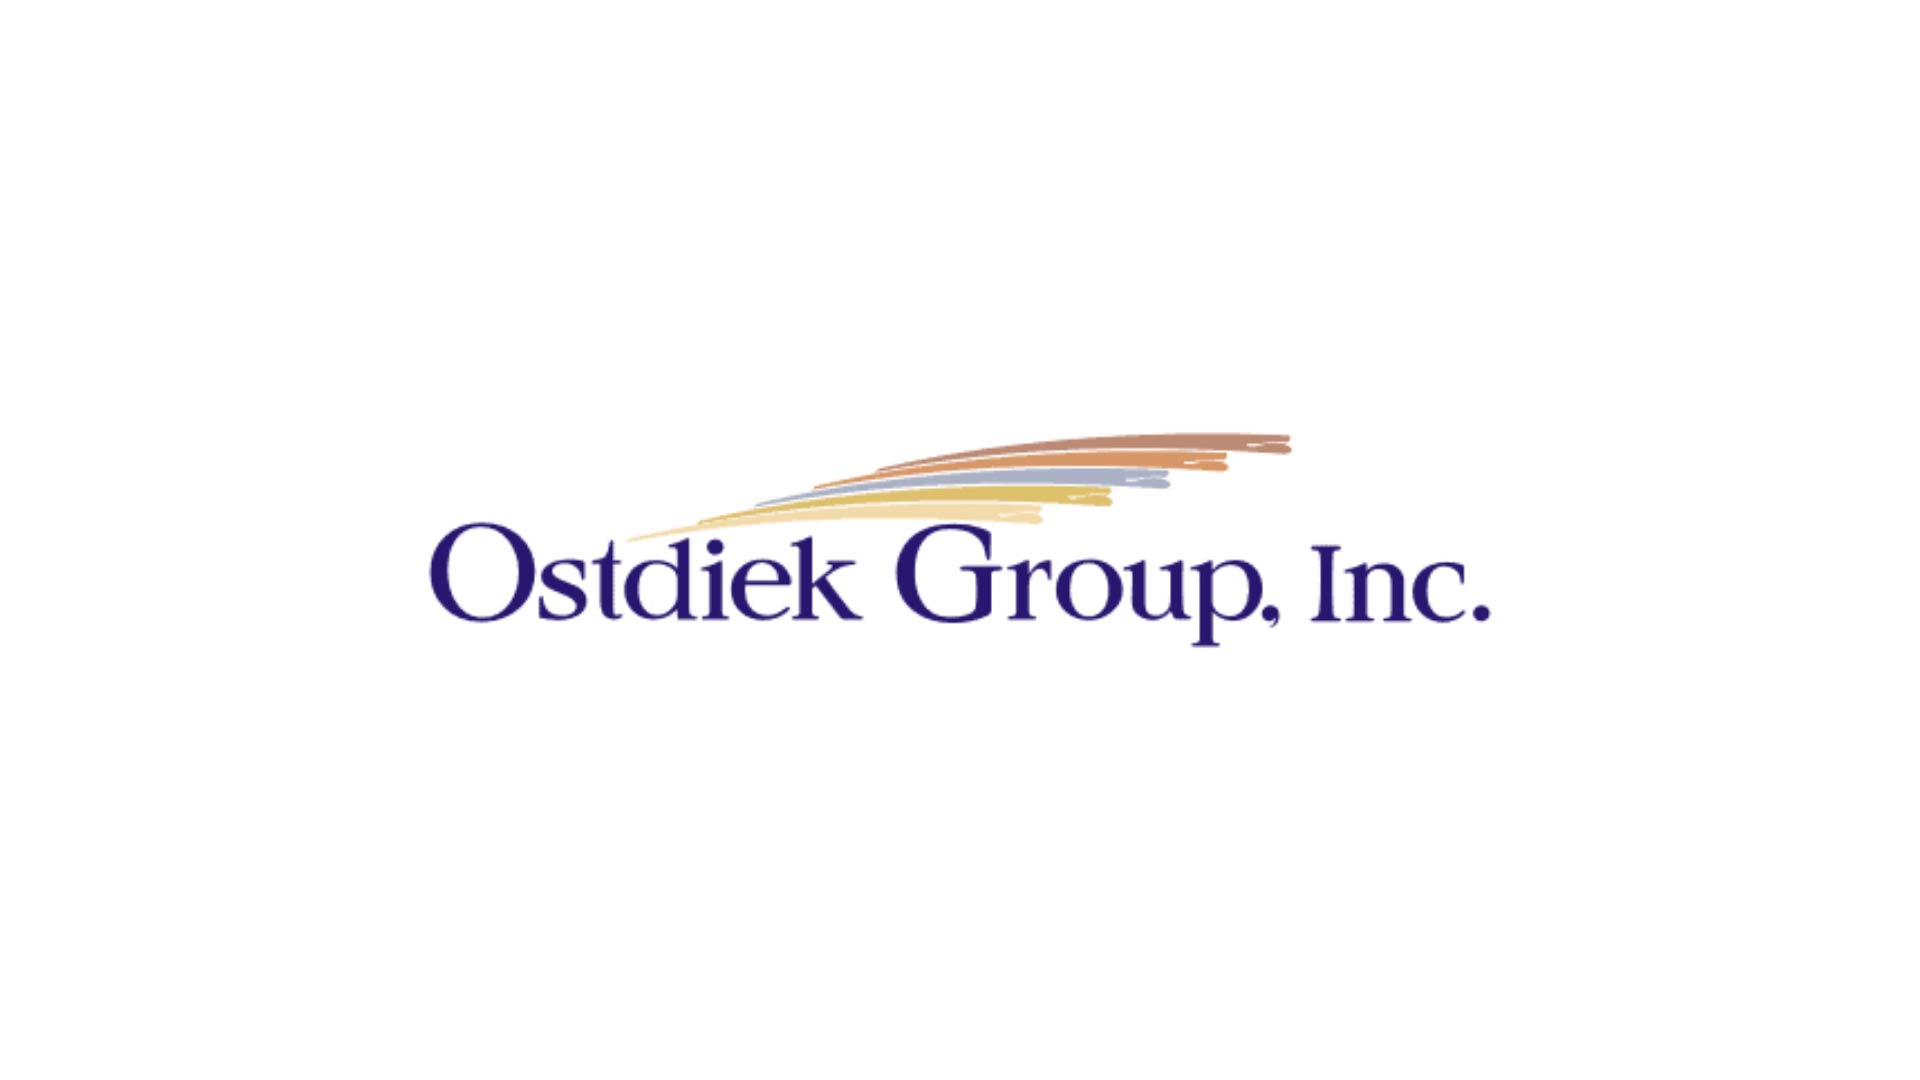 Ostdiek Group, Inc